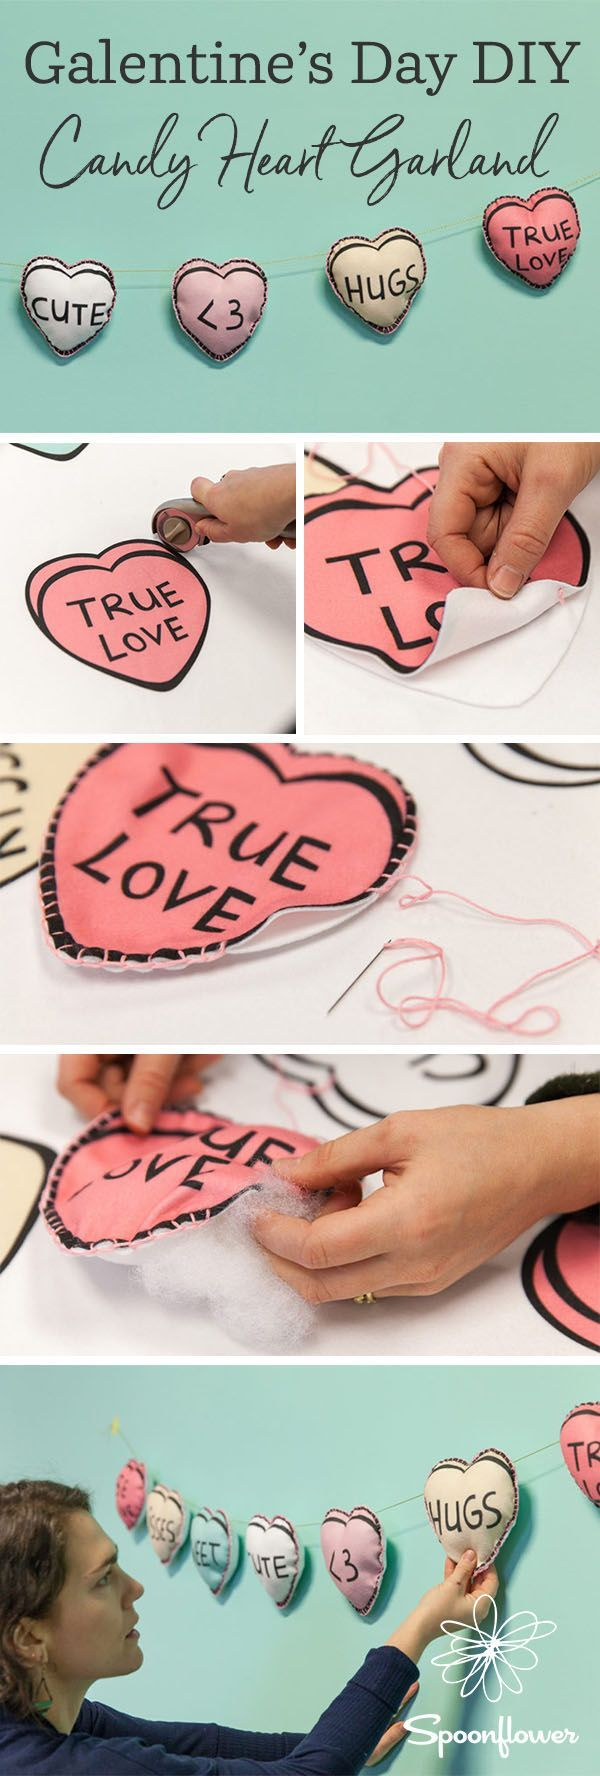 This DIY Candy Heart Garland is Galentine's Day Approved - Make these easy DIY Fleece hearts for Galentine's Day or Valentine's Day!  All you need is some fleece fabric from Spoonflower, scissors, needle and thread to make your own custom printed heart garland.  Click to see all the steps including how to make a blanket stitch around the edges.  #valentinesdiy #valentinesday #diy #easydiy #hearts #candyhearts #galentinesday #fleece #sewing #sew #party #diyparty